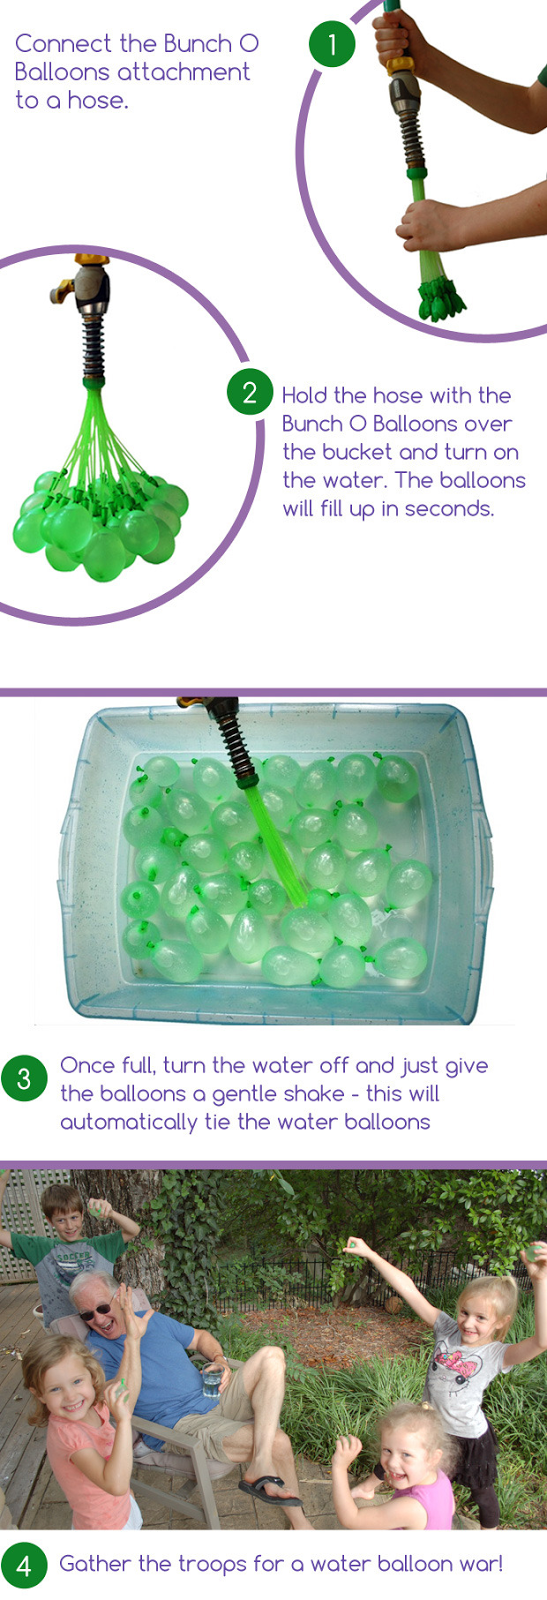 Bunch O Balloons: 100 Water Balloons in Less Than 1 Minute